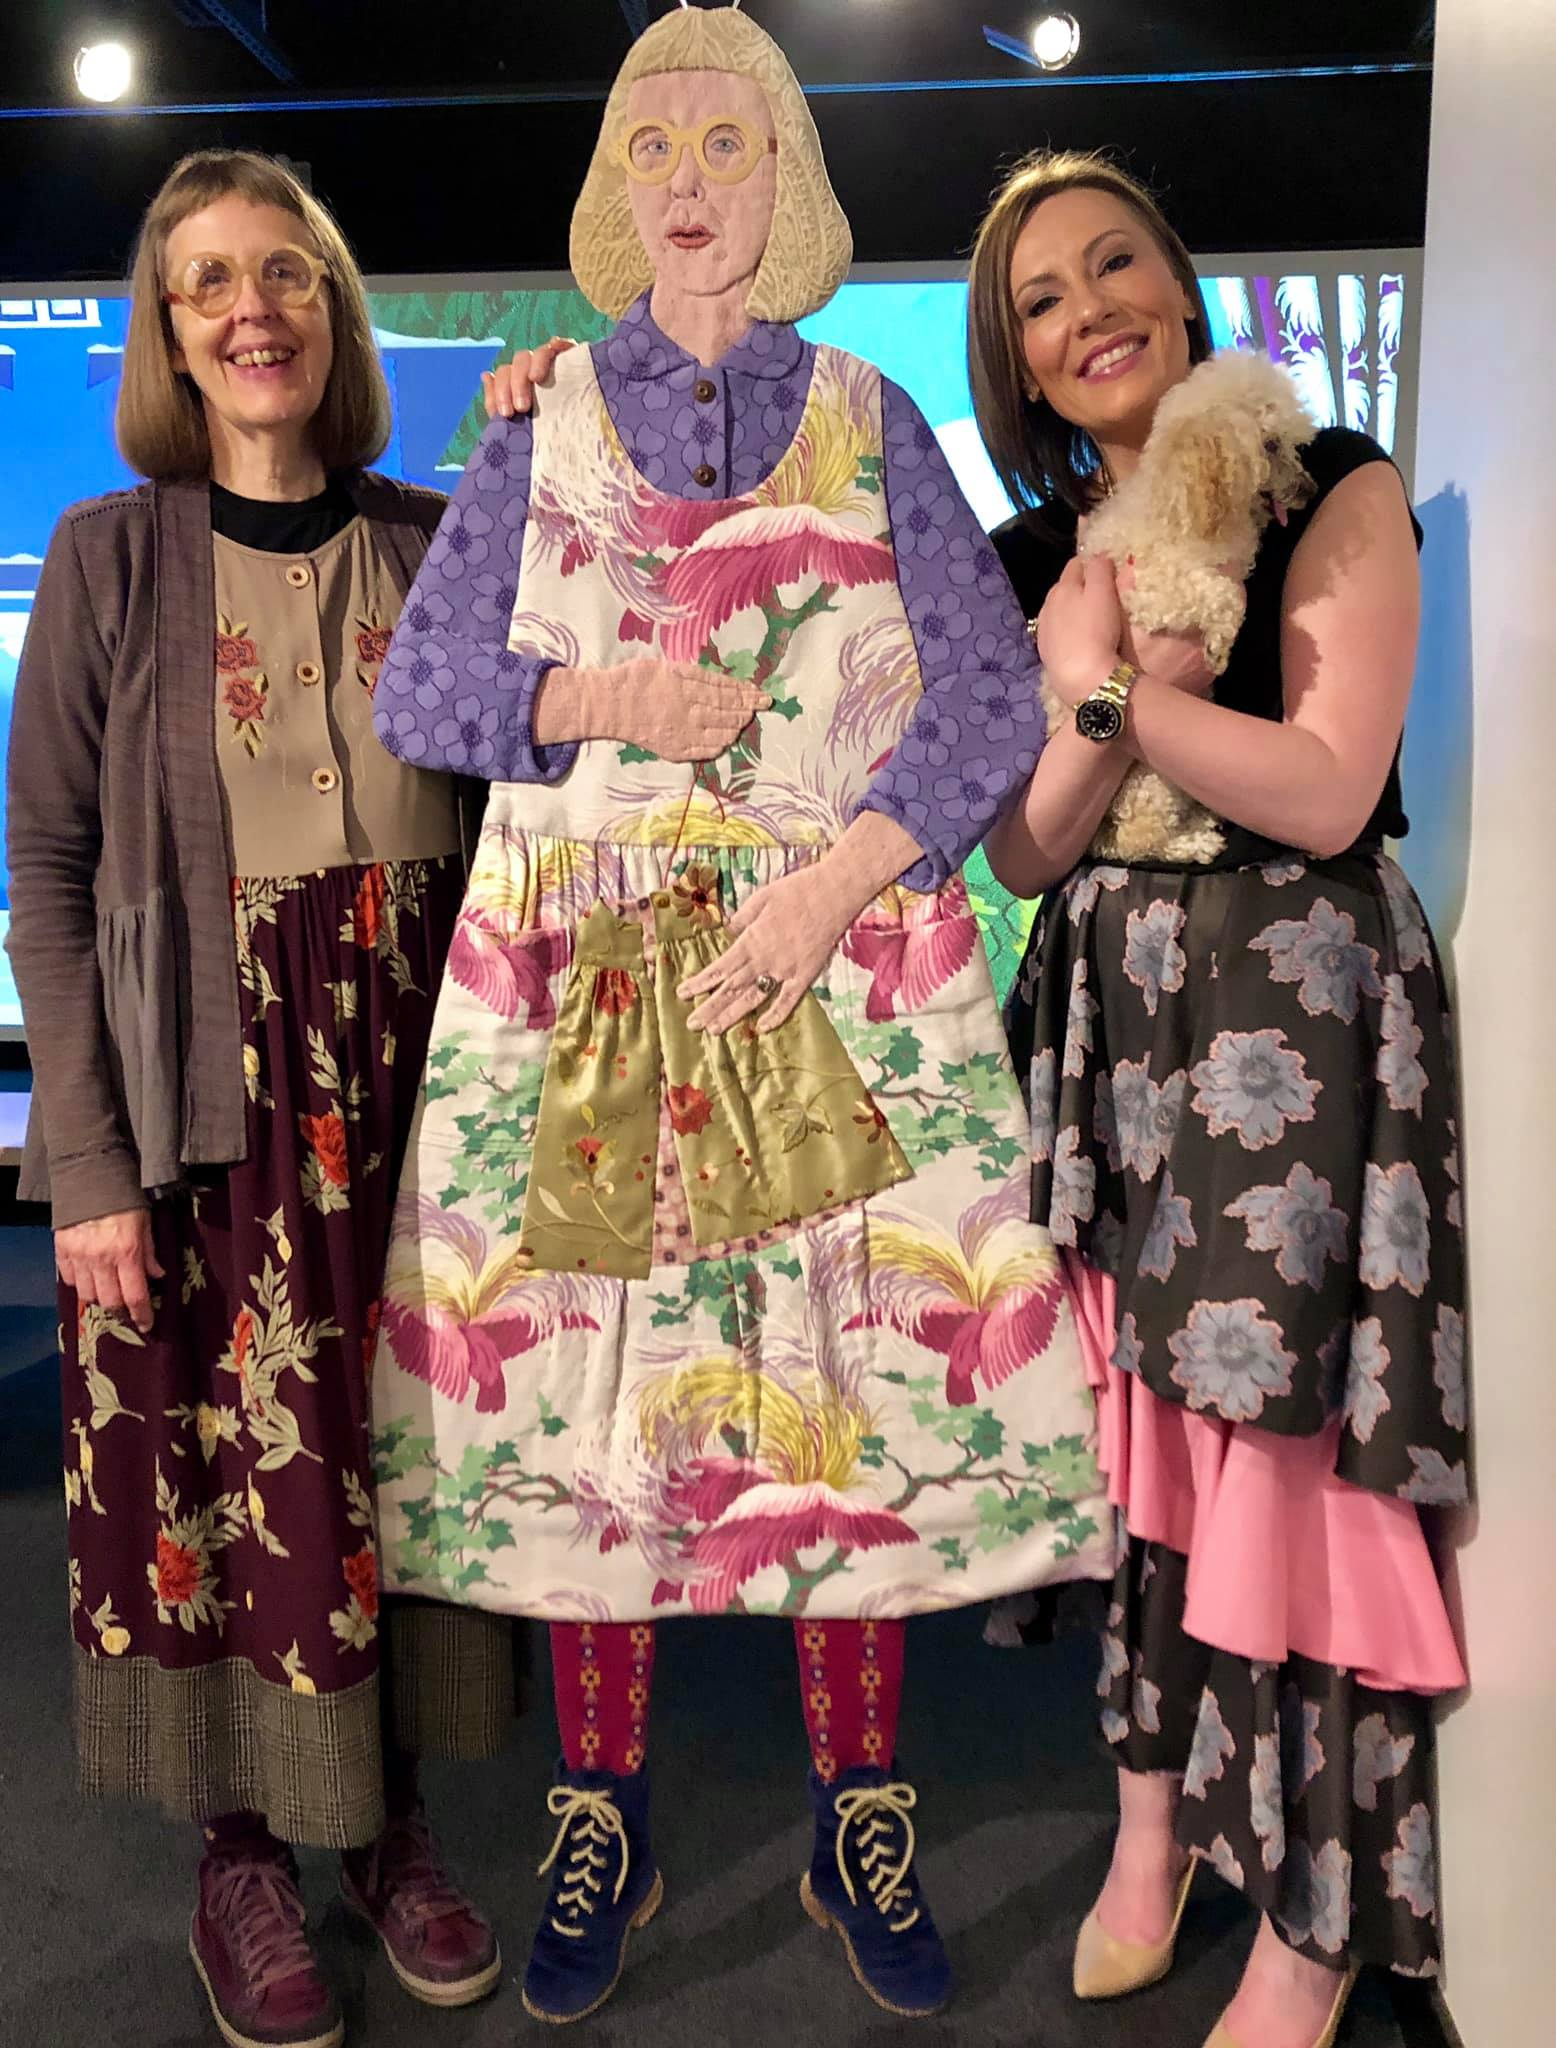 Artist Shelley Thornton, Rachel Hoffman, and Murray visiting Shelley's Solo Exhibition at the Robert Hillestad Textiles Gallery in Lincoln, Nebraska